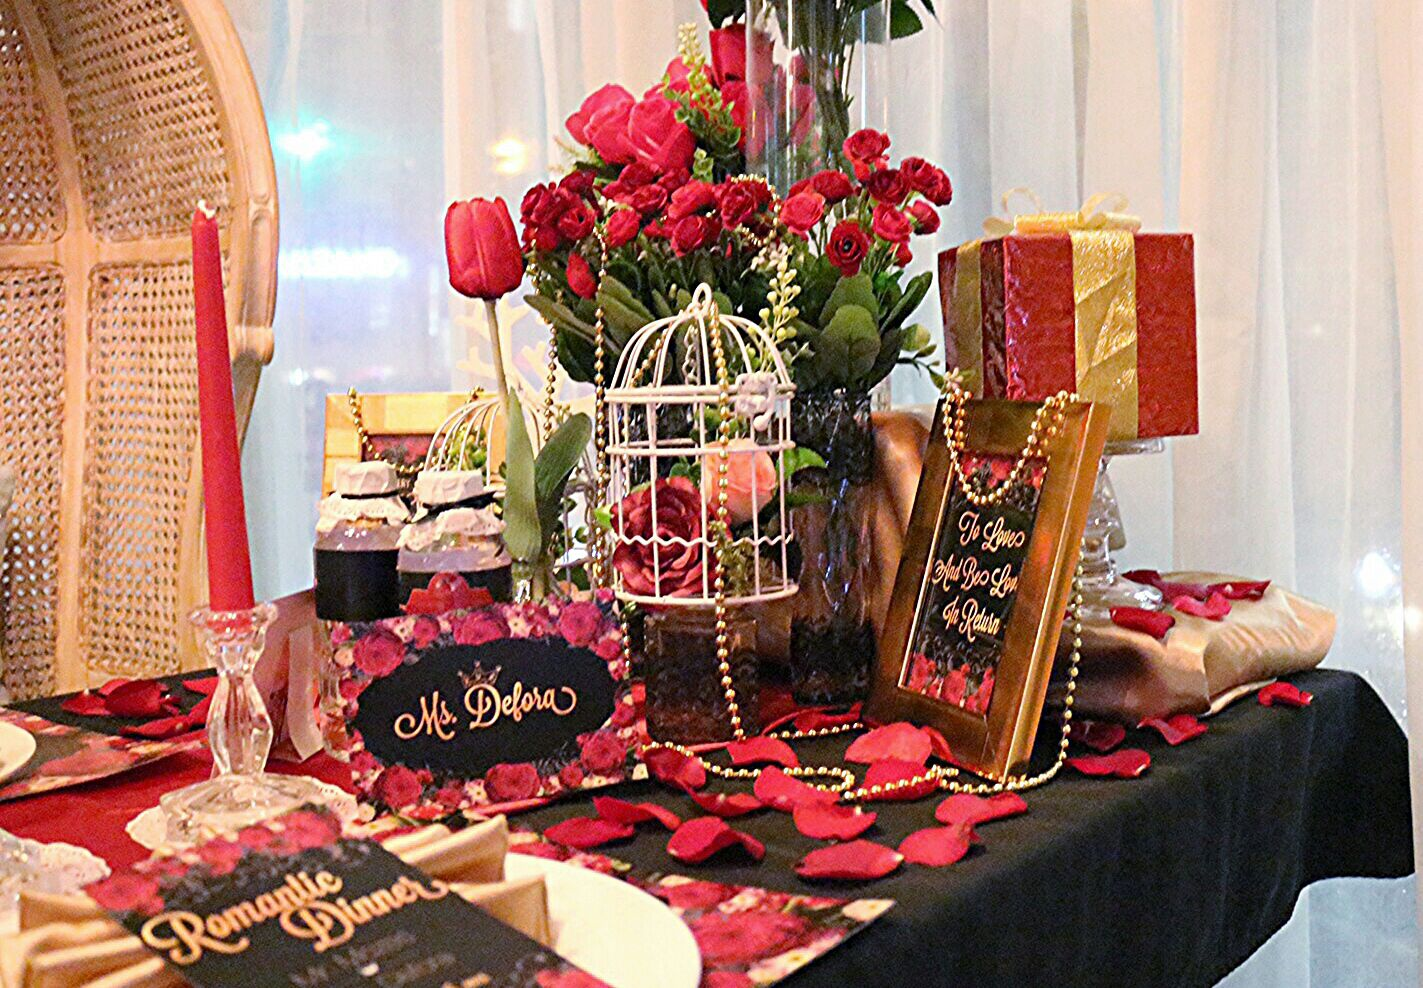 The Romantic Dinner For Romantic Couple Party Planner